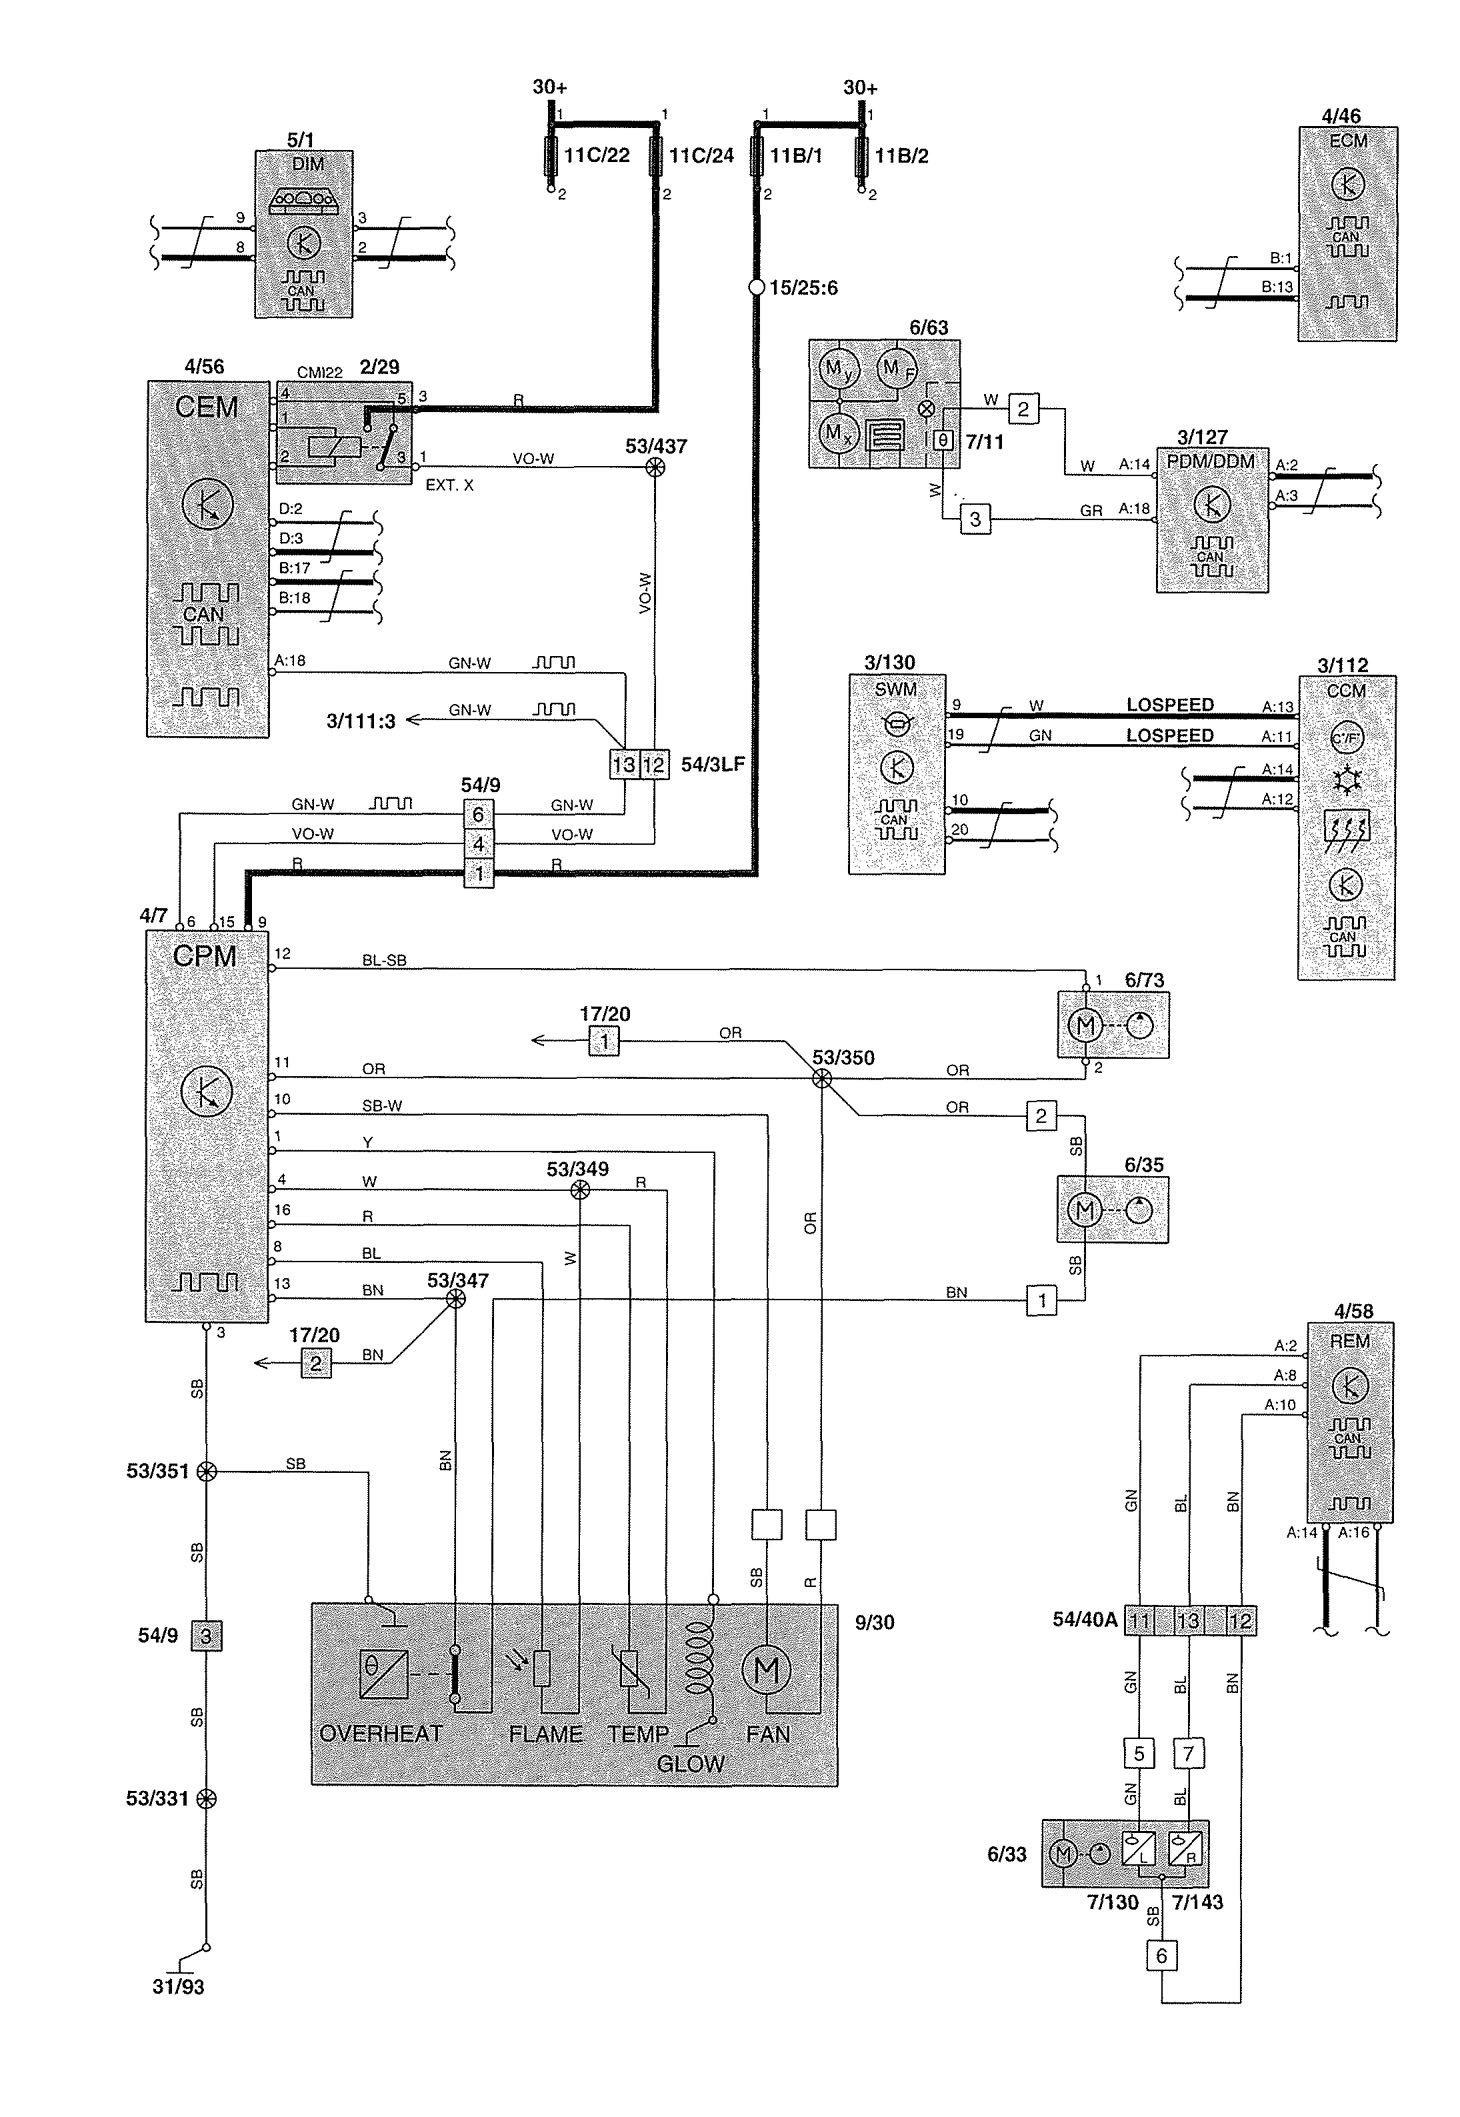 Volvo V70 Cem Wiring Diagram Apktodownload